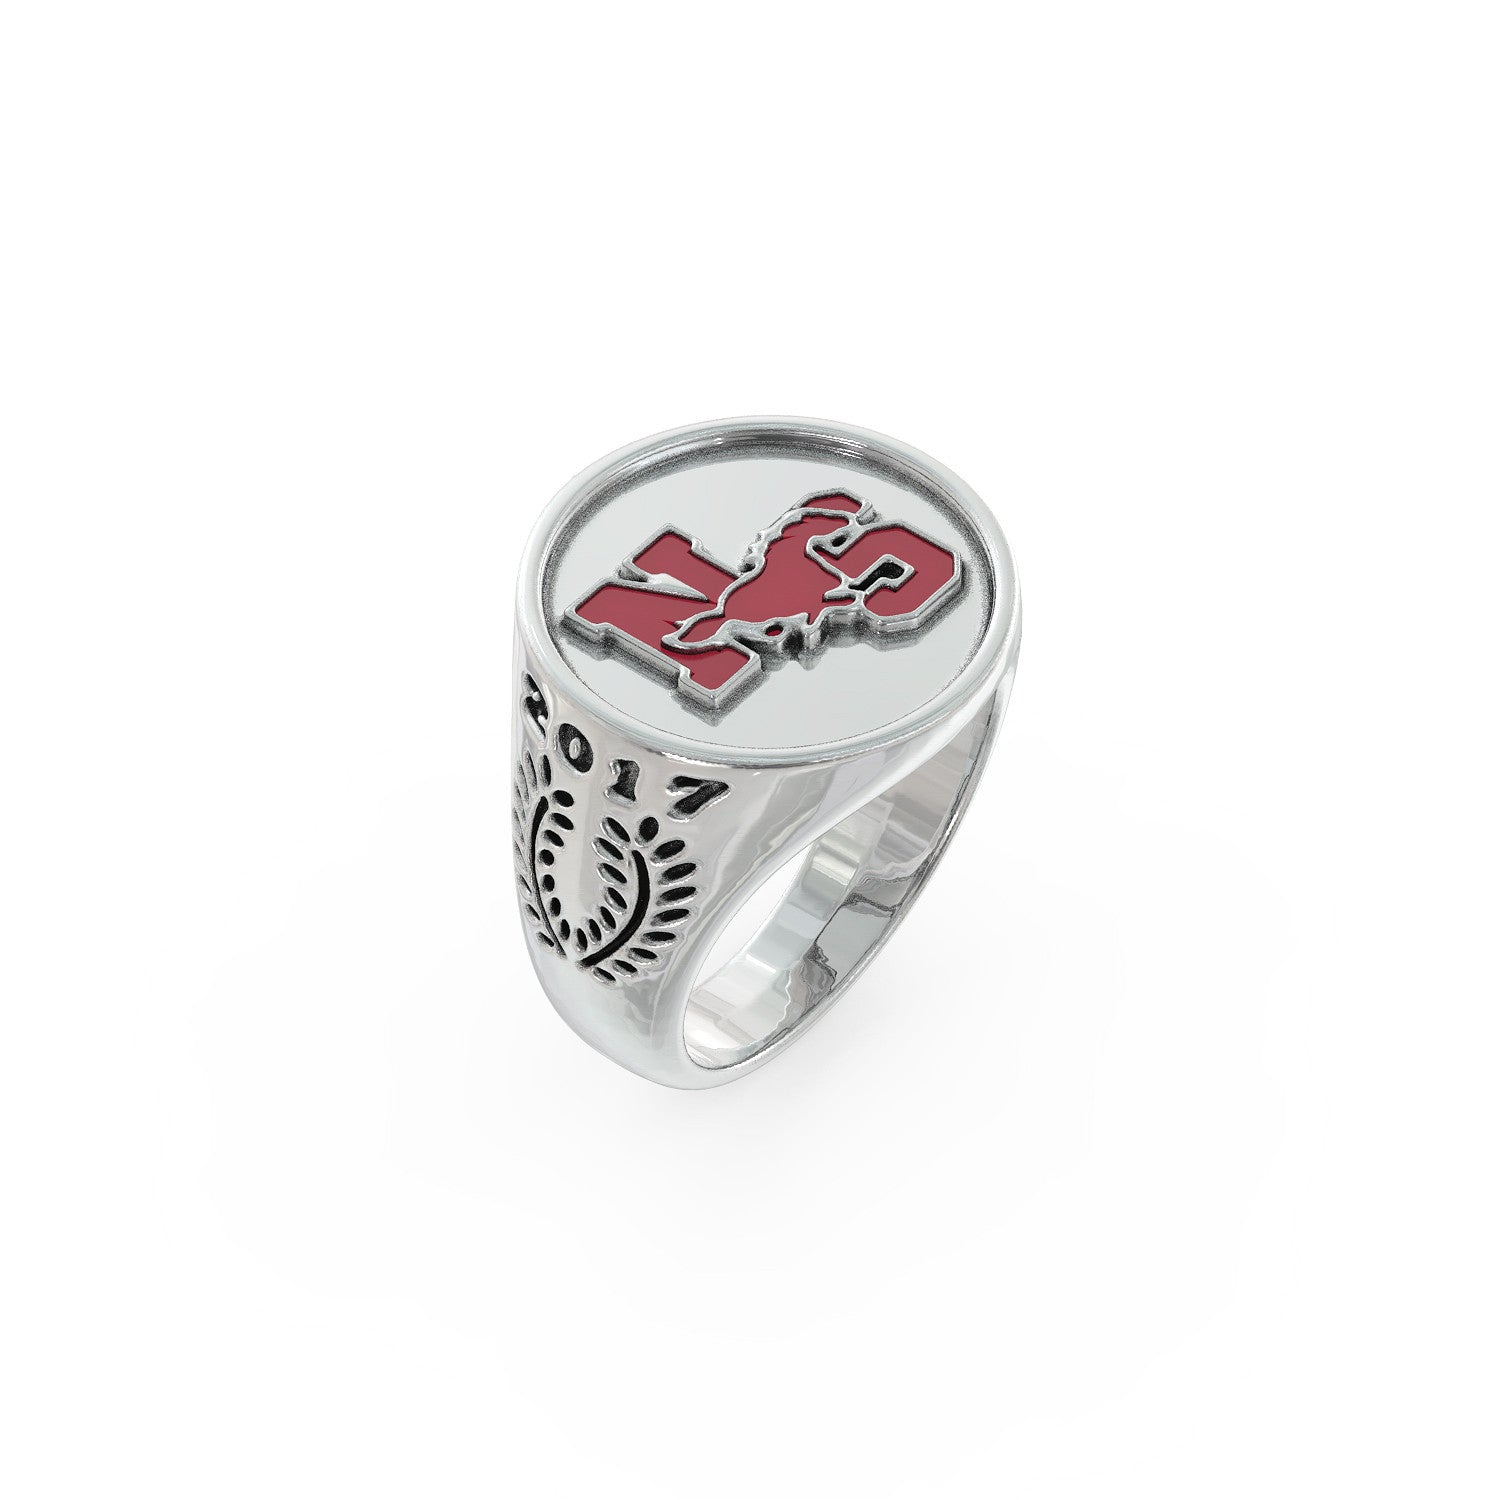 Class of '17 - Northshore Senior High Ring - LIMITED EDITION